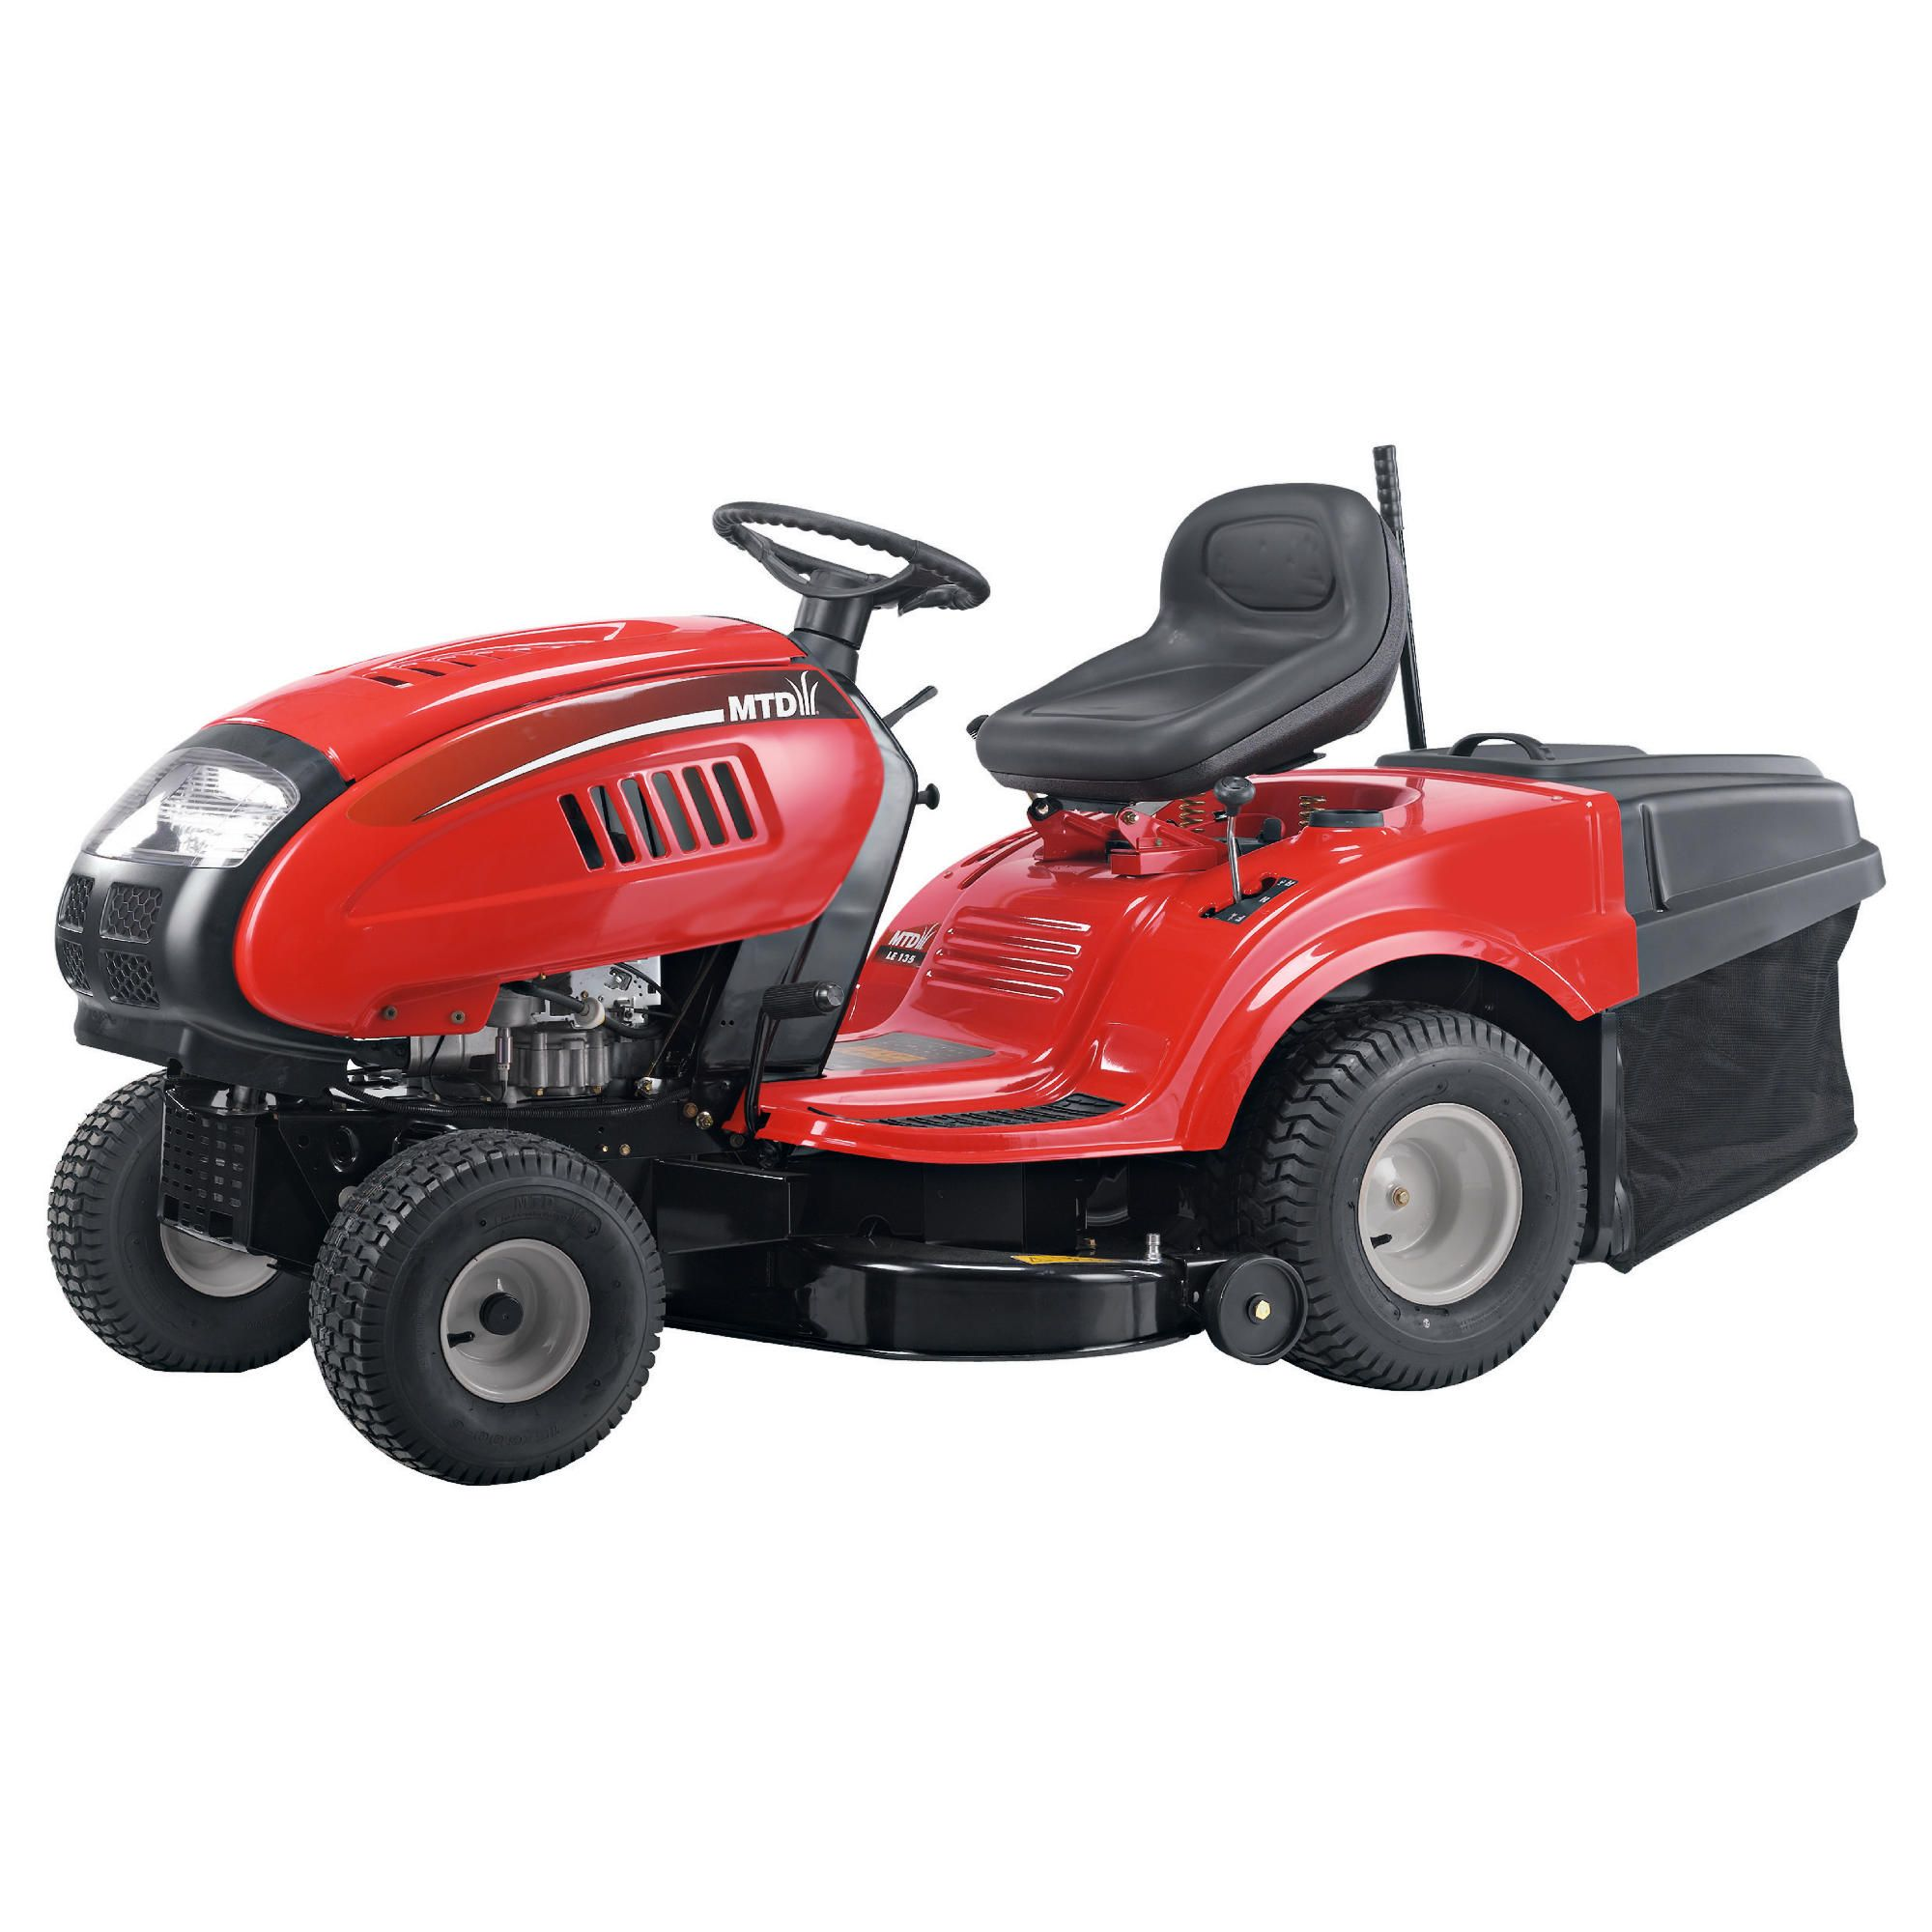 MTD 13hp Rear Discharge Lawn Tractor LE130 at Tescos Direct